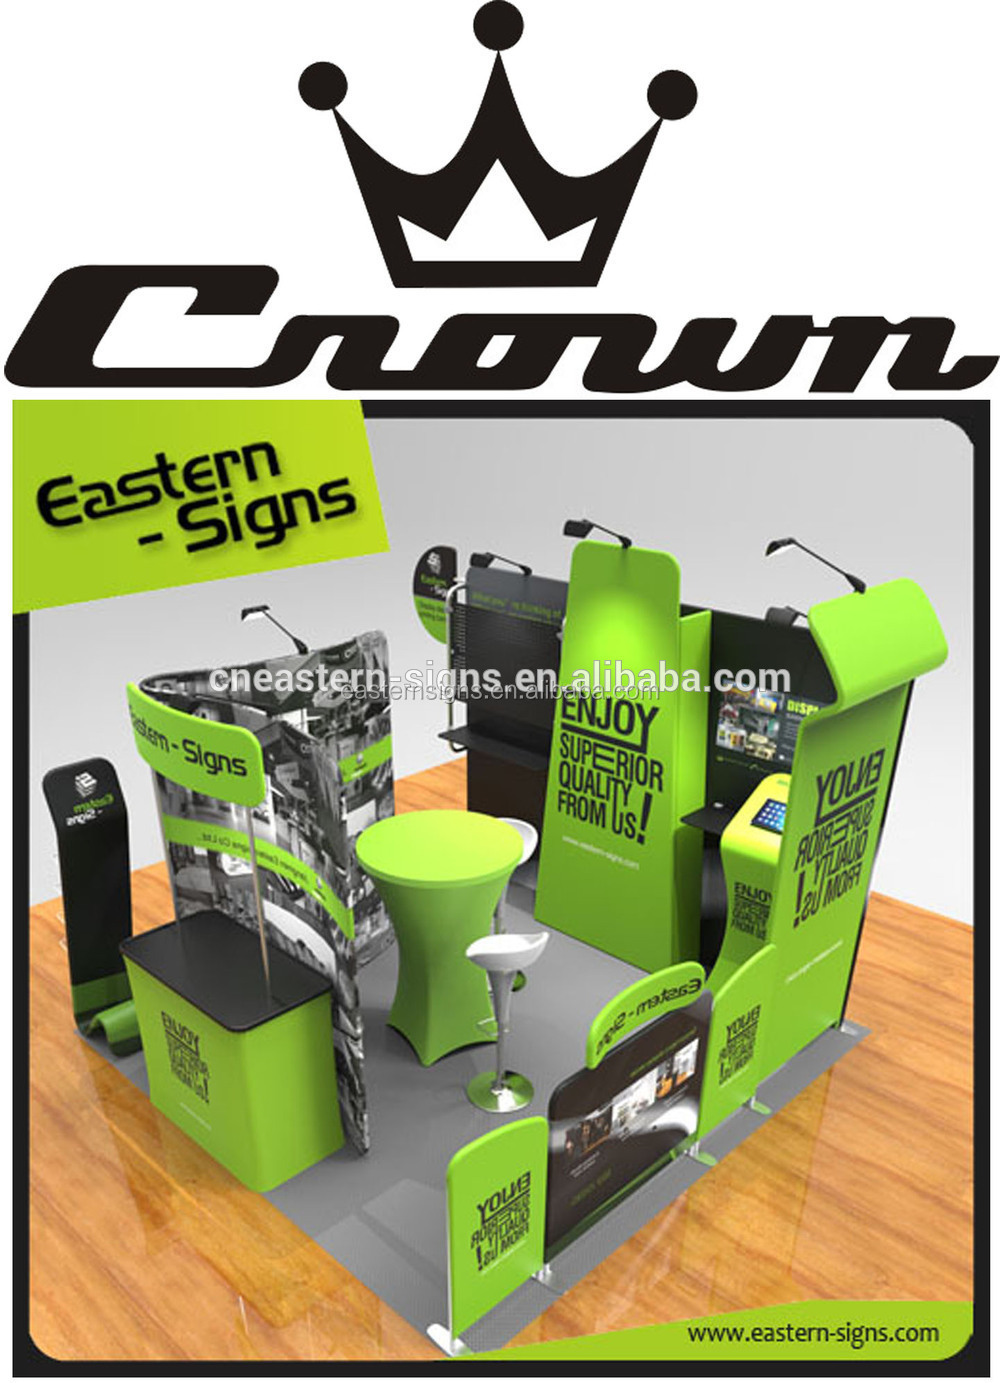 Collapsible trade show Booth Display